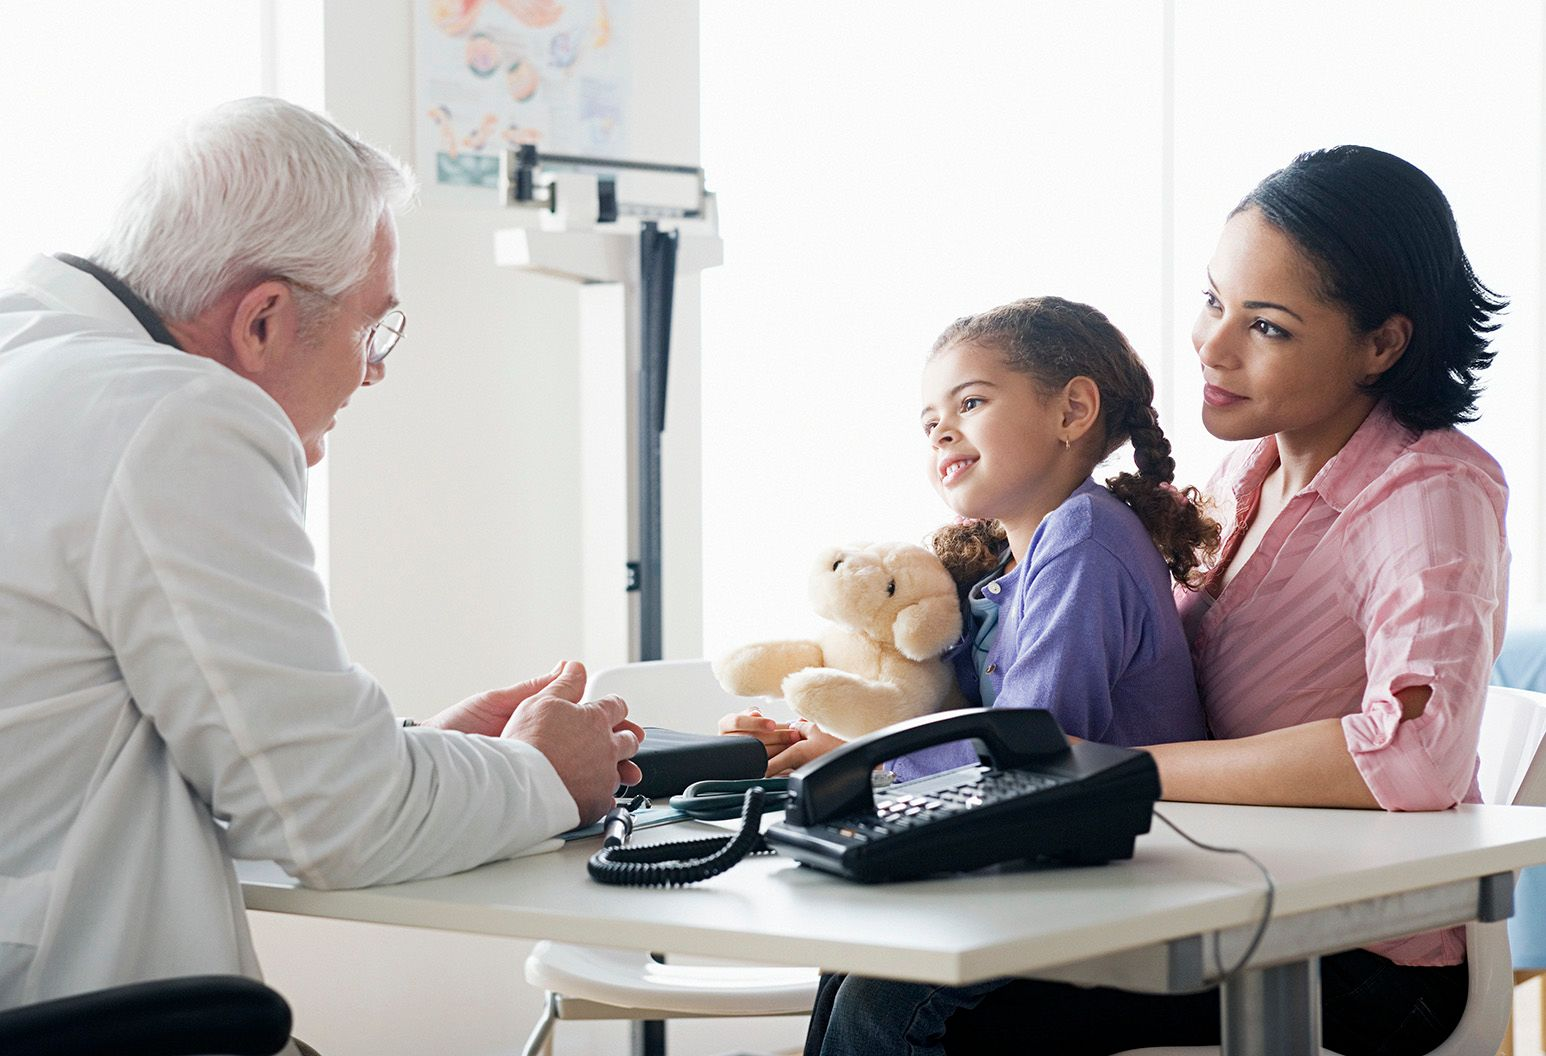 An elderly male doctor sits in a doctors office across the table from a little girl and her mom. The little girl has her hair in pigtails and is holding a teddy bear and looking at the doctor.